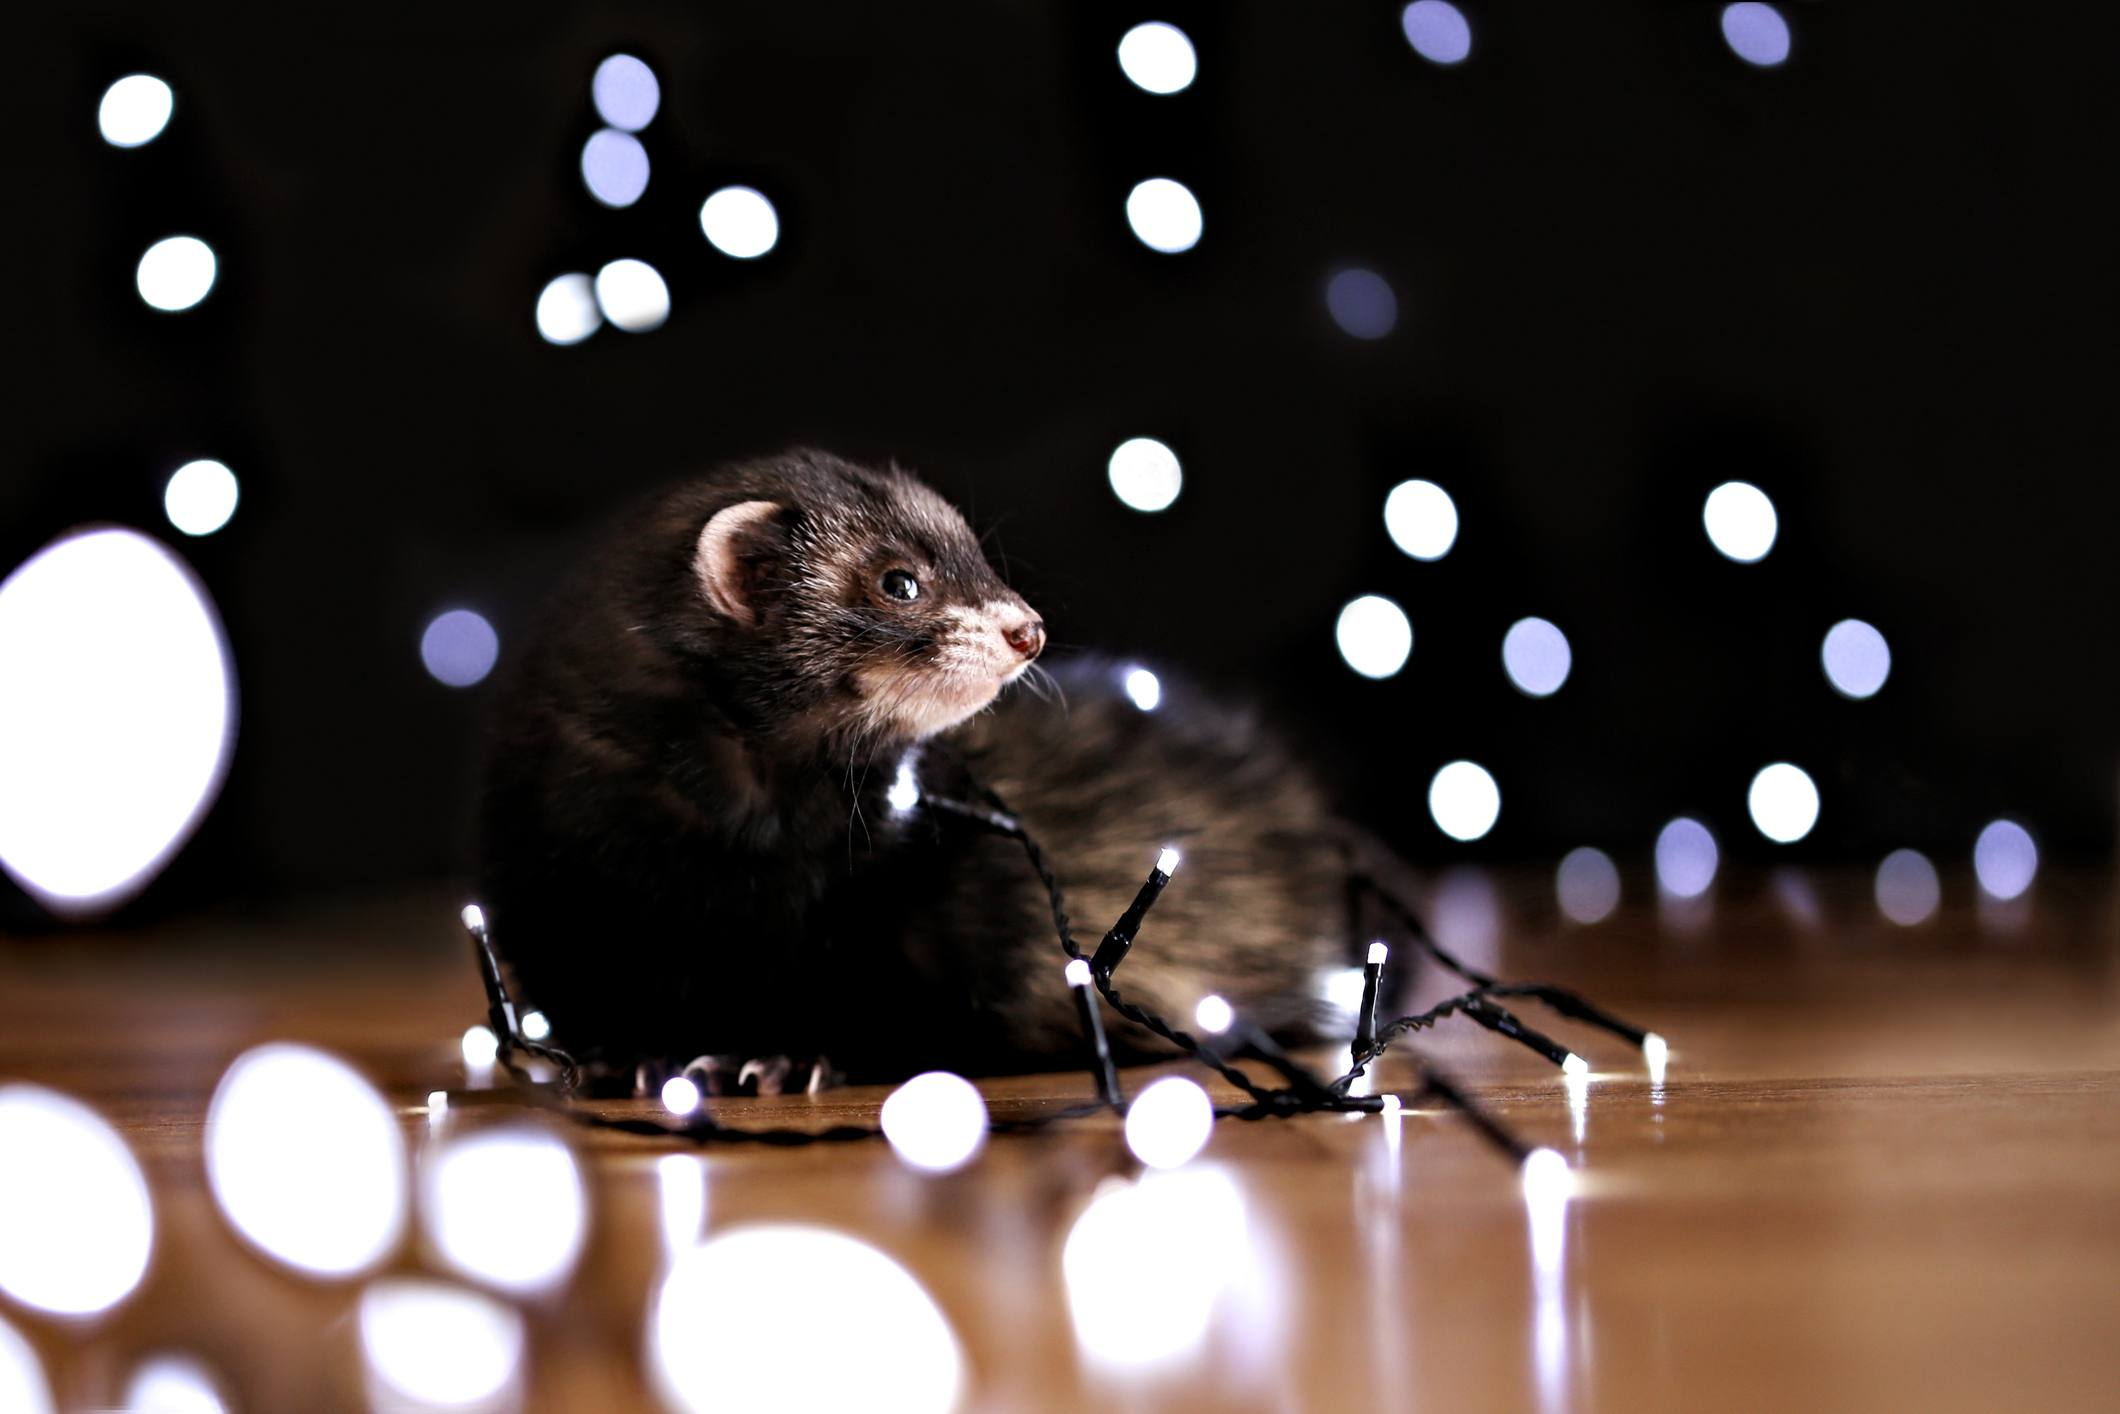 Ferret with string lights